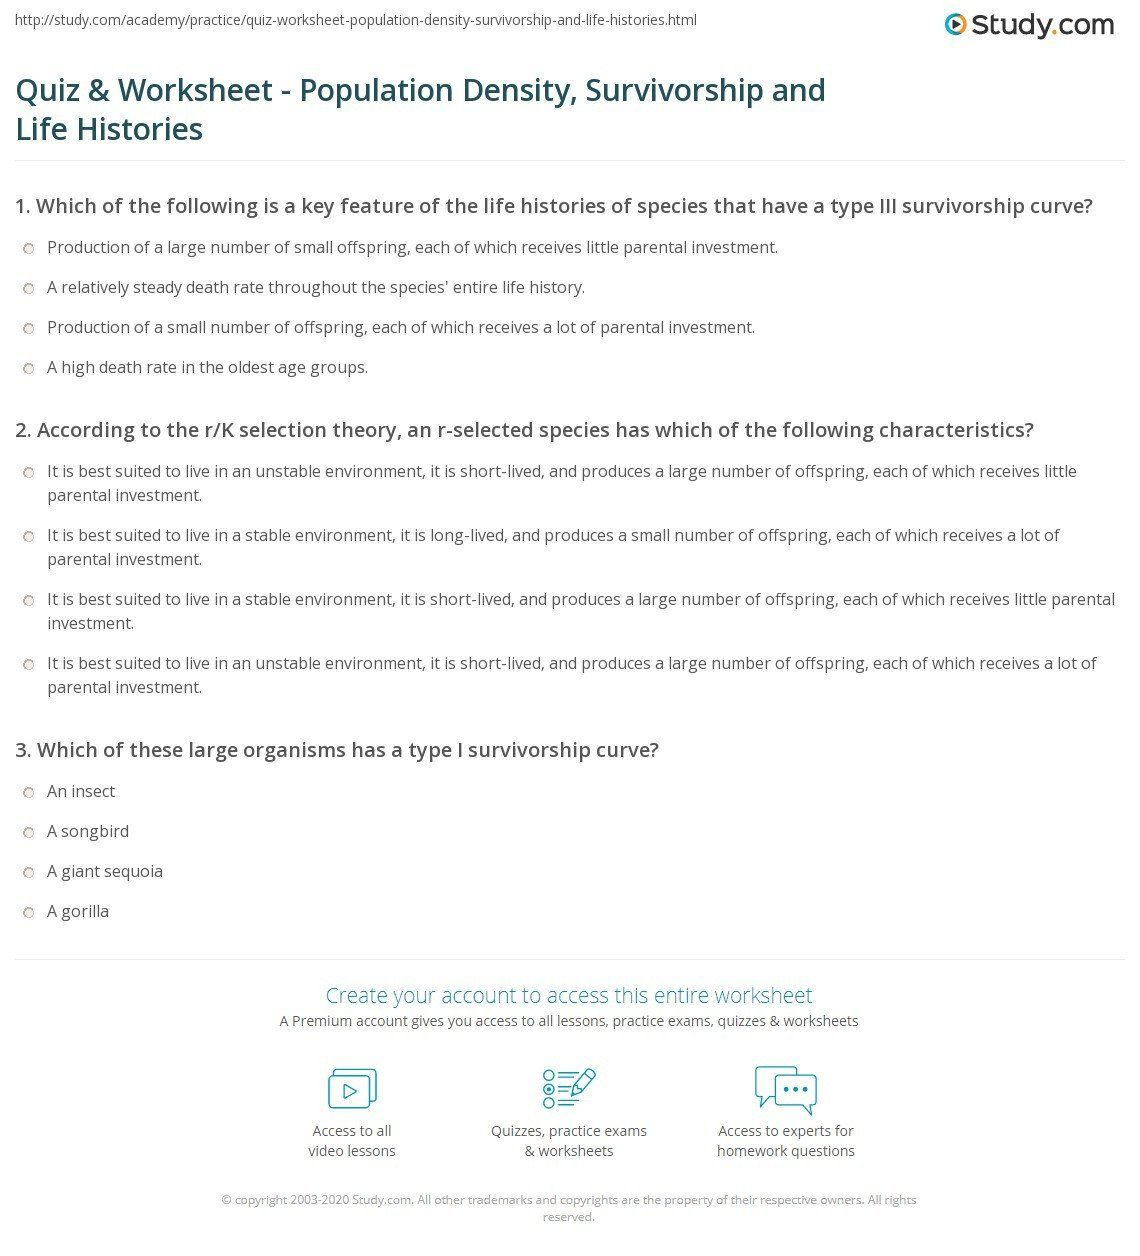 Population Density Worksheet Answers Population Growth Curves Worksheet Density Worksheet Worksheets Answers